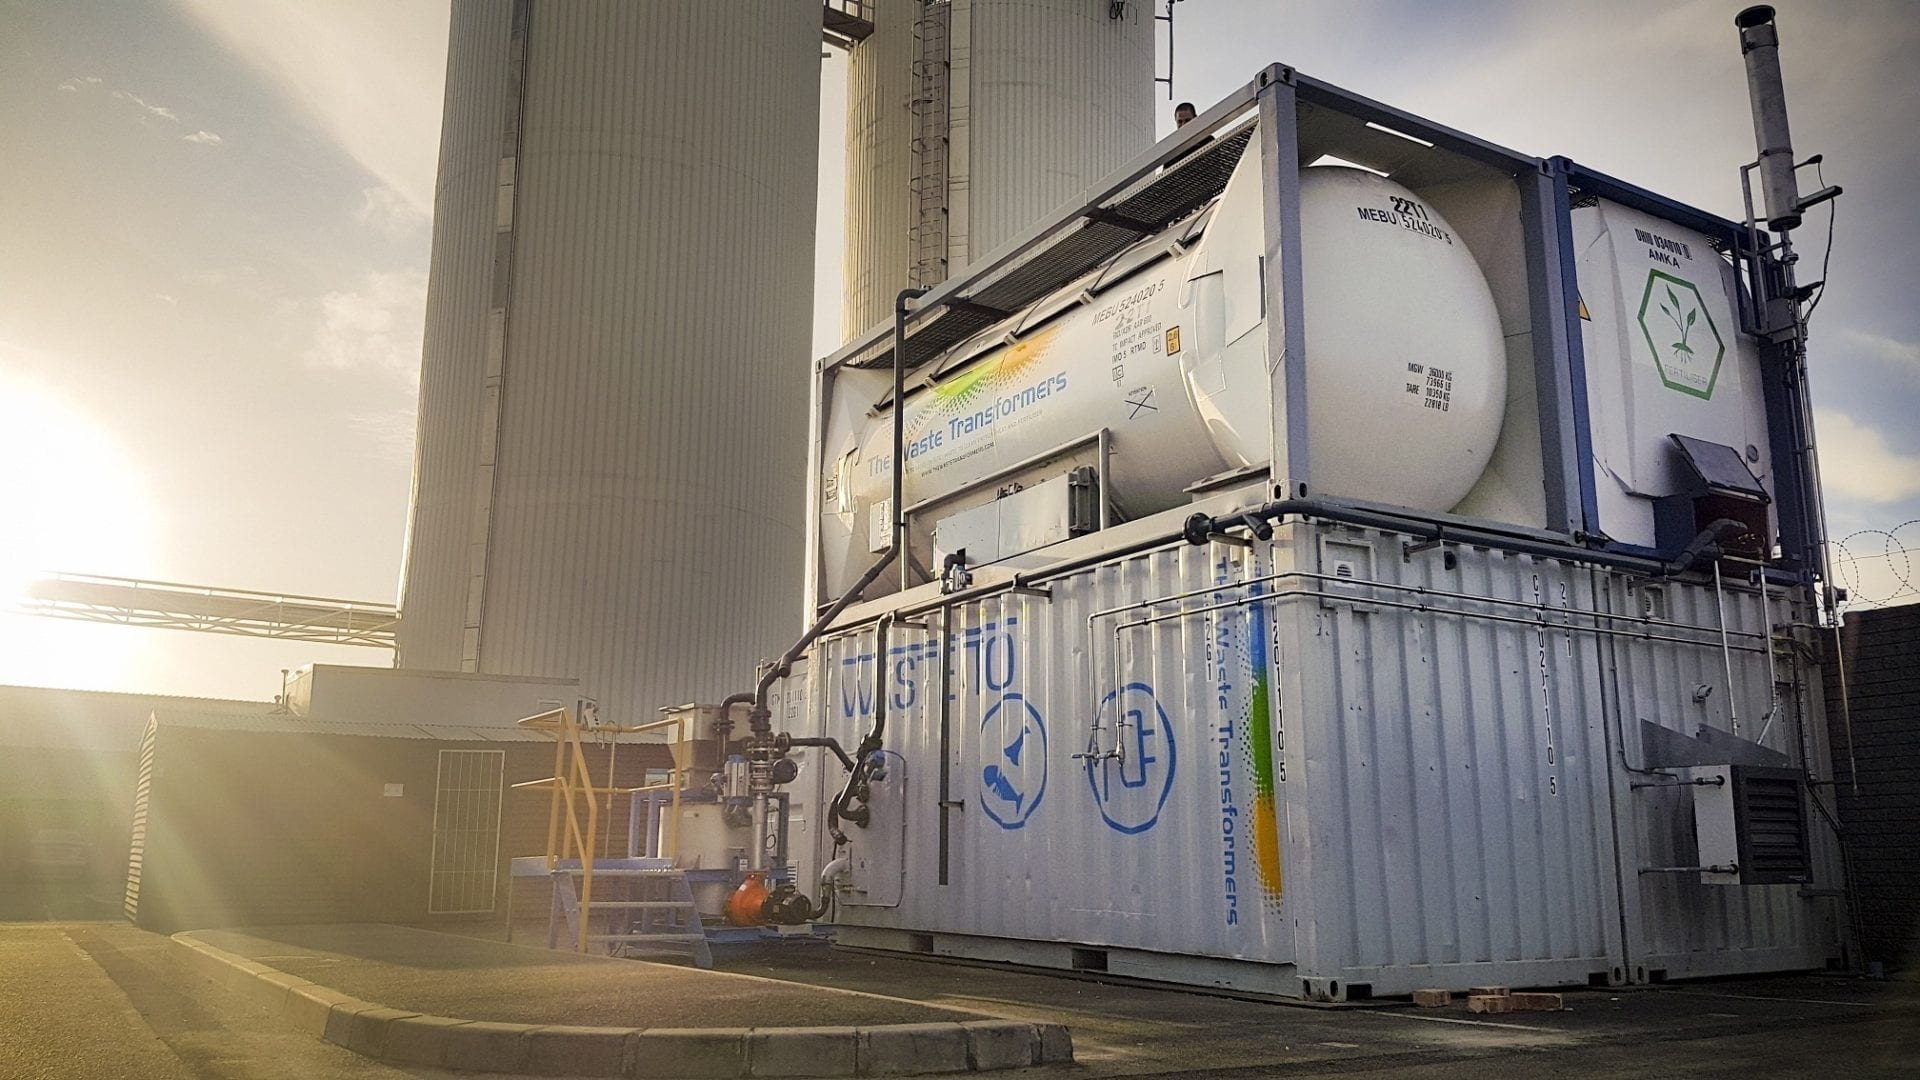 Waste-to-energy initiative launched at N1 City Mall in Cape Town